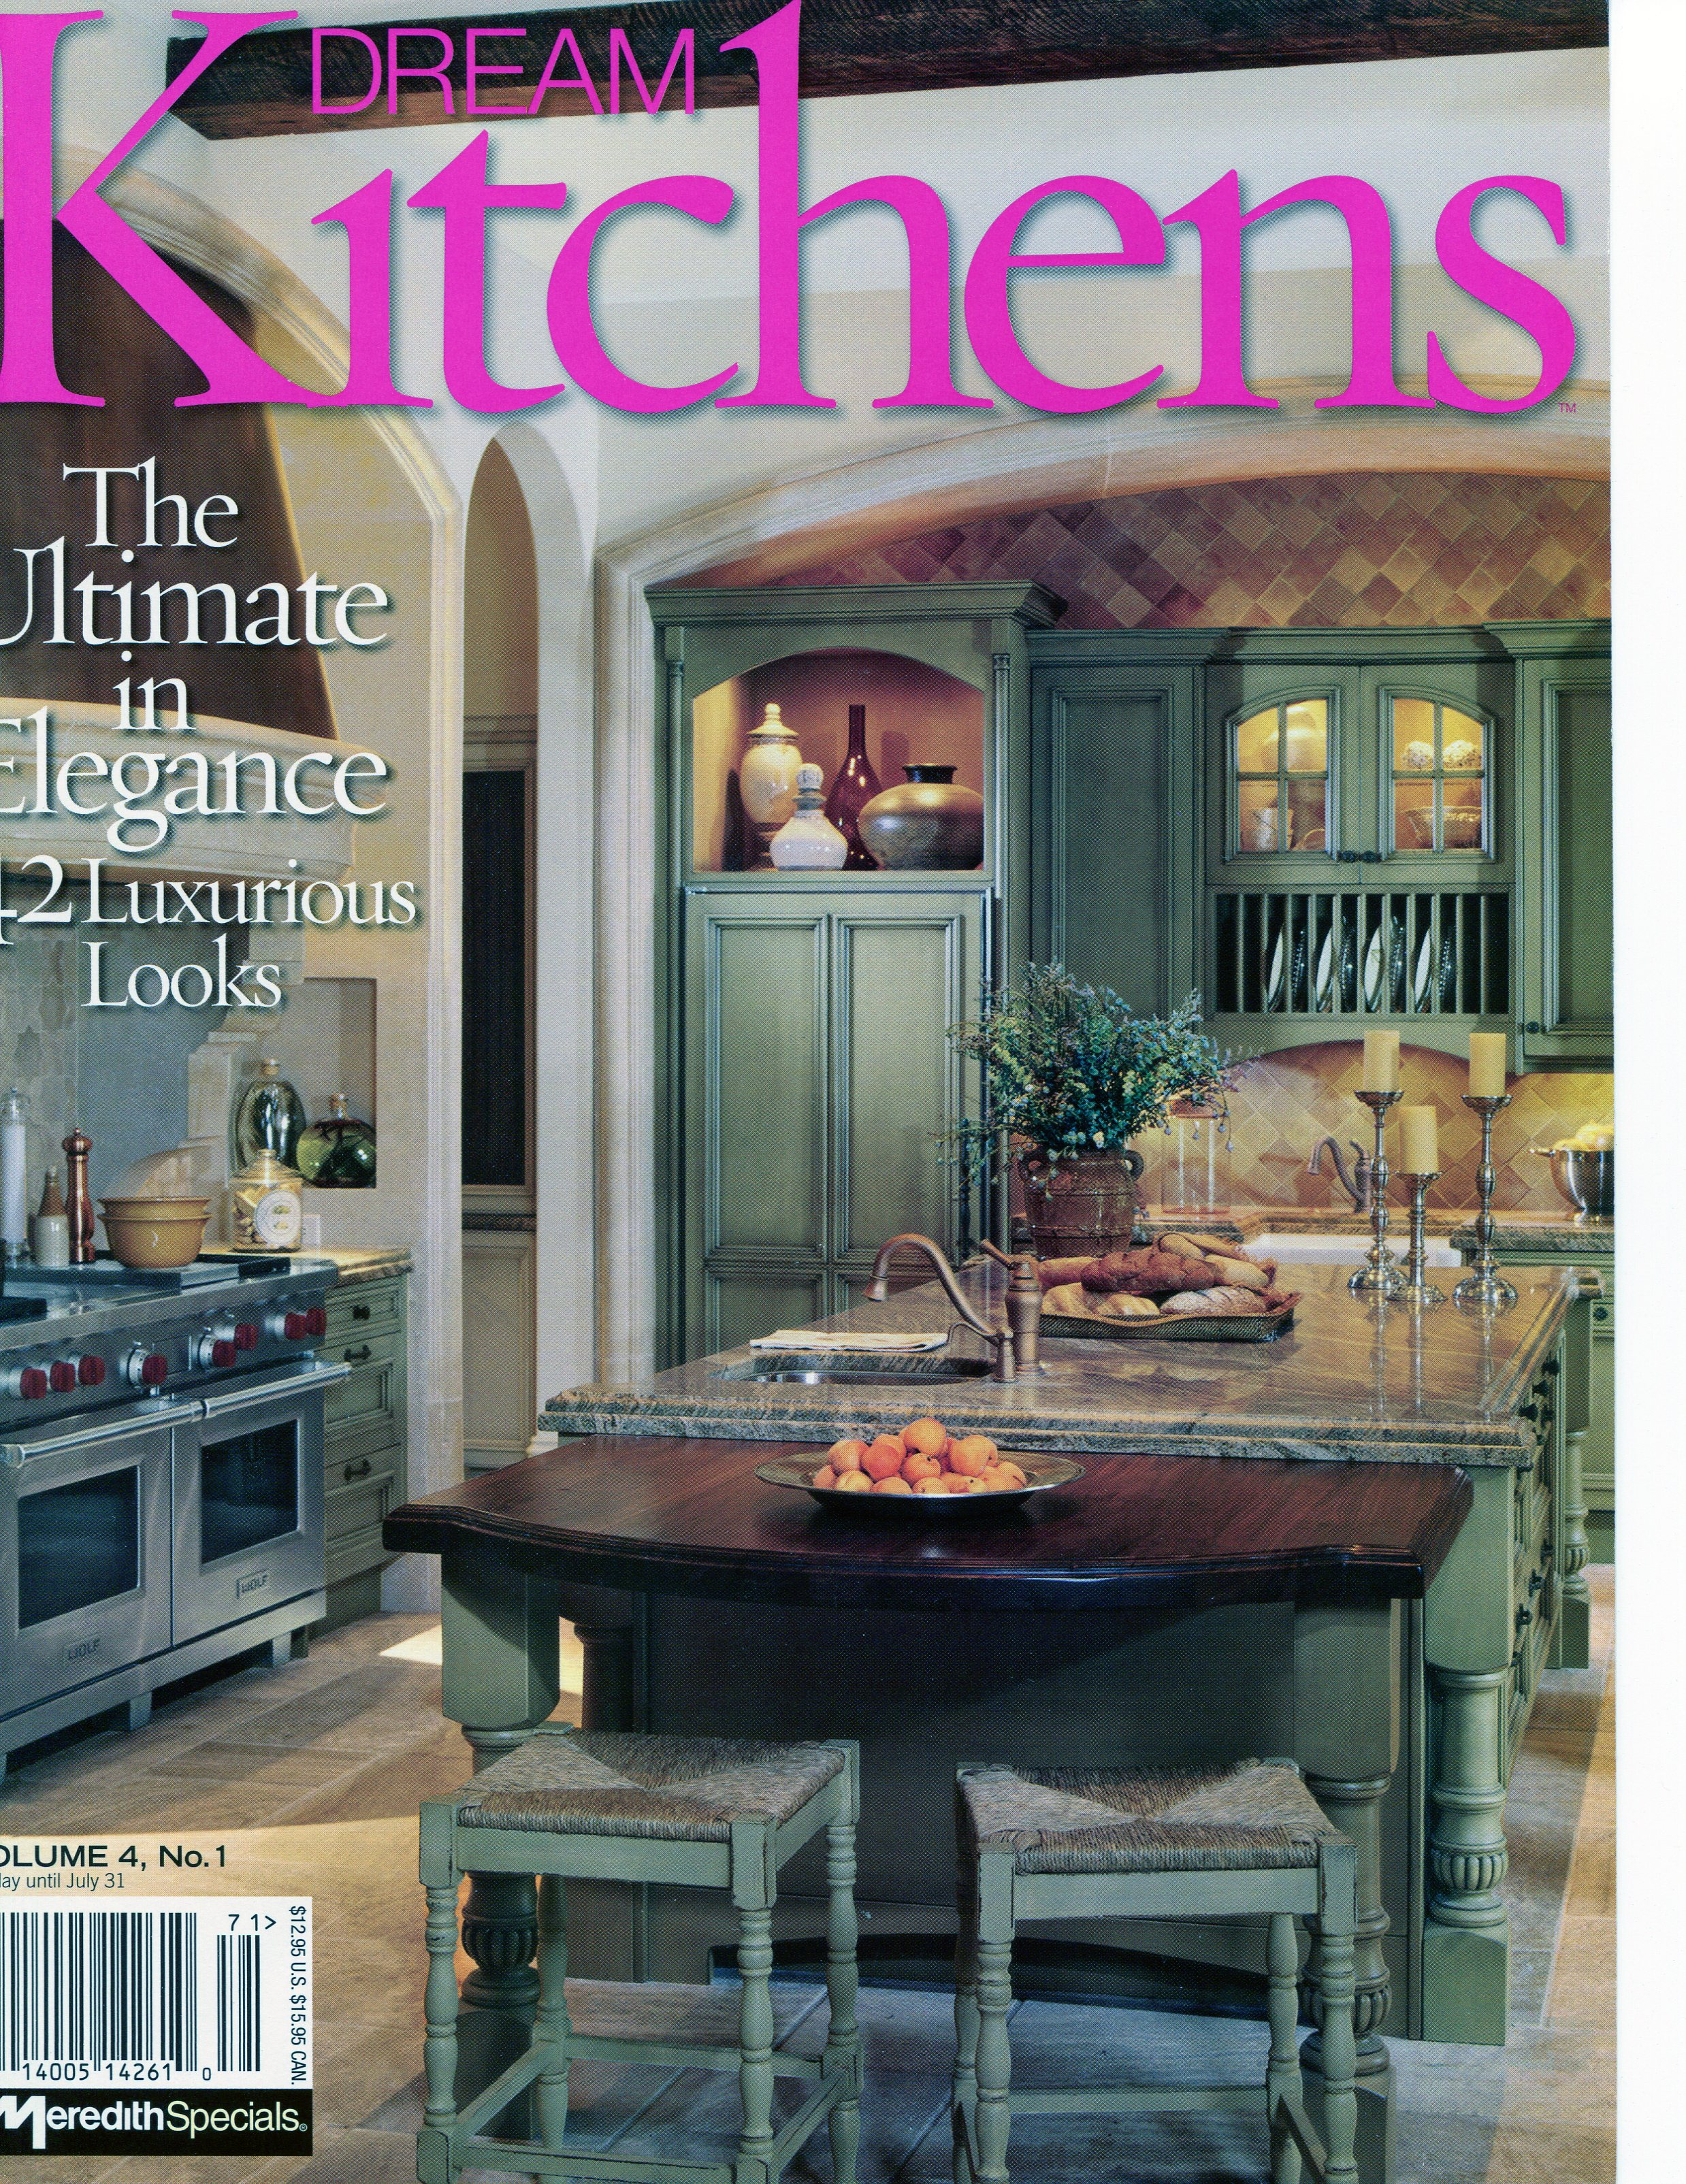 Dream Kitchens July 2007_1